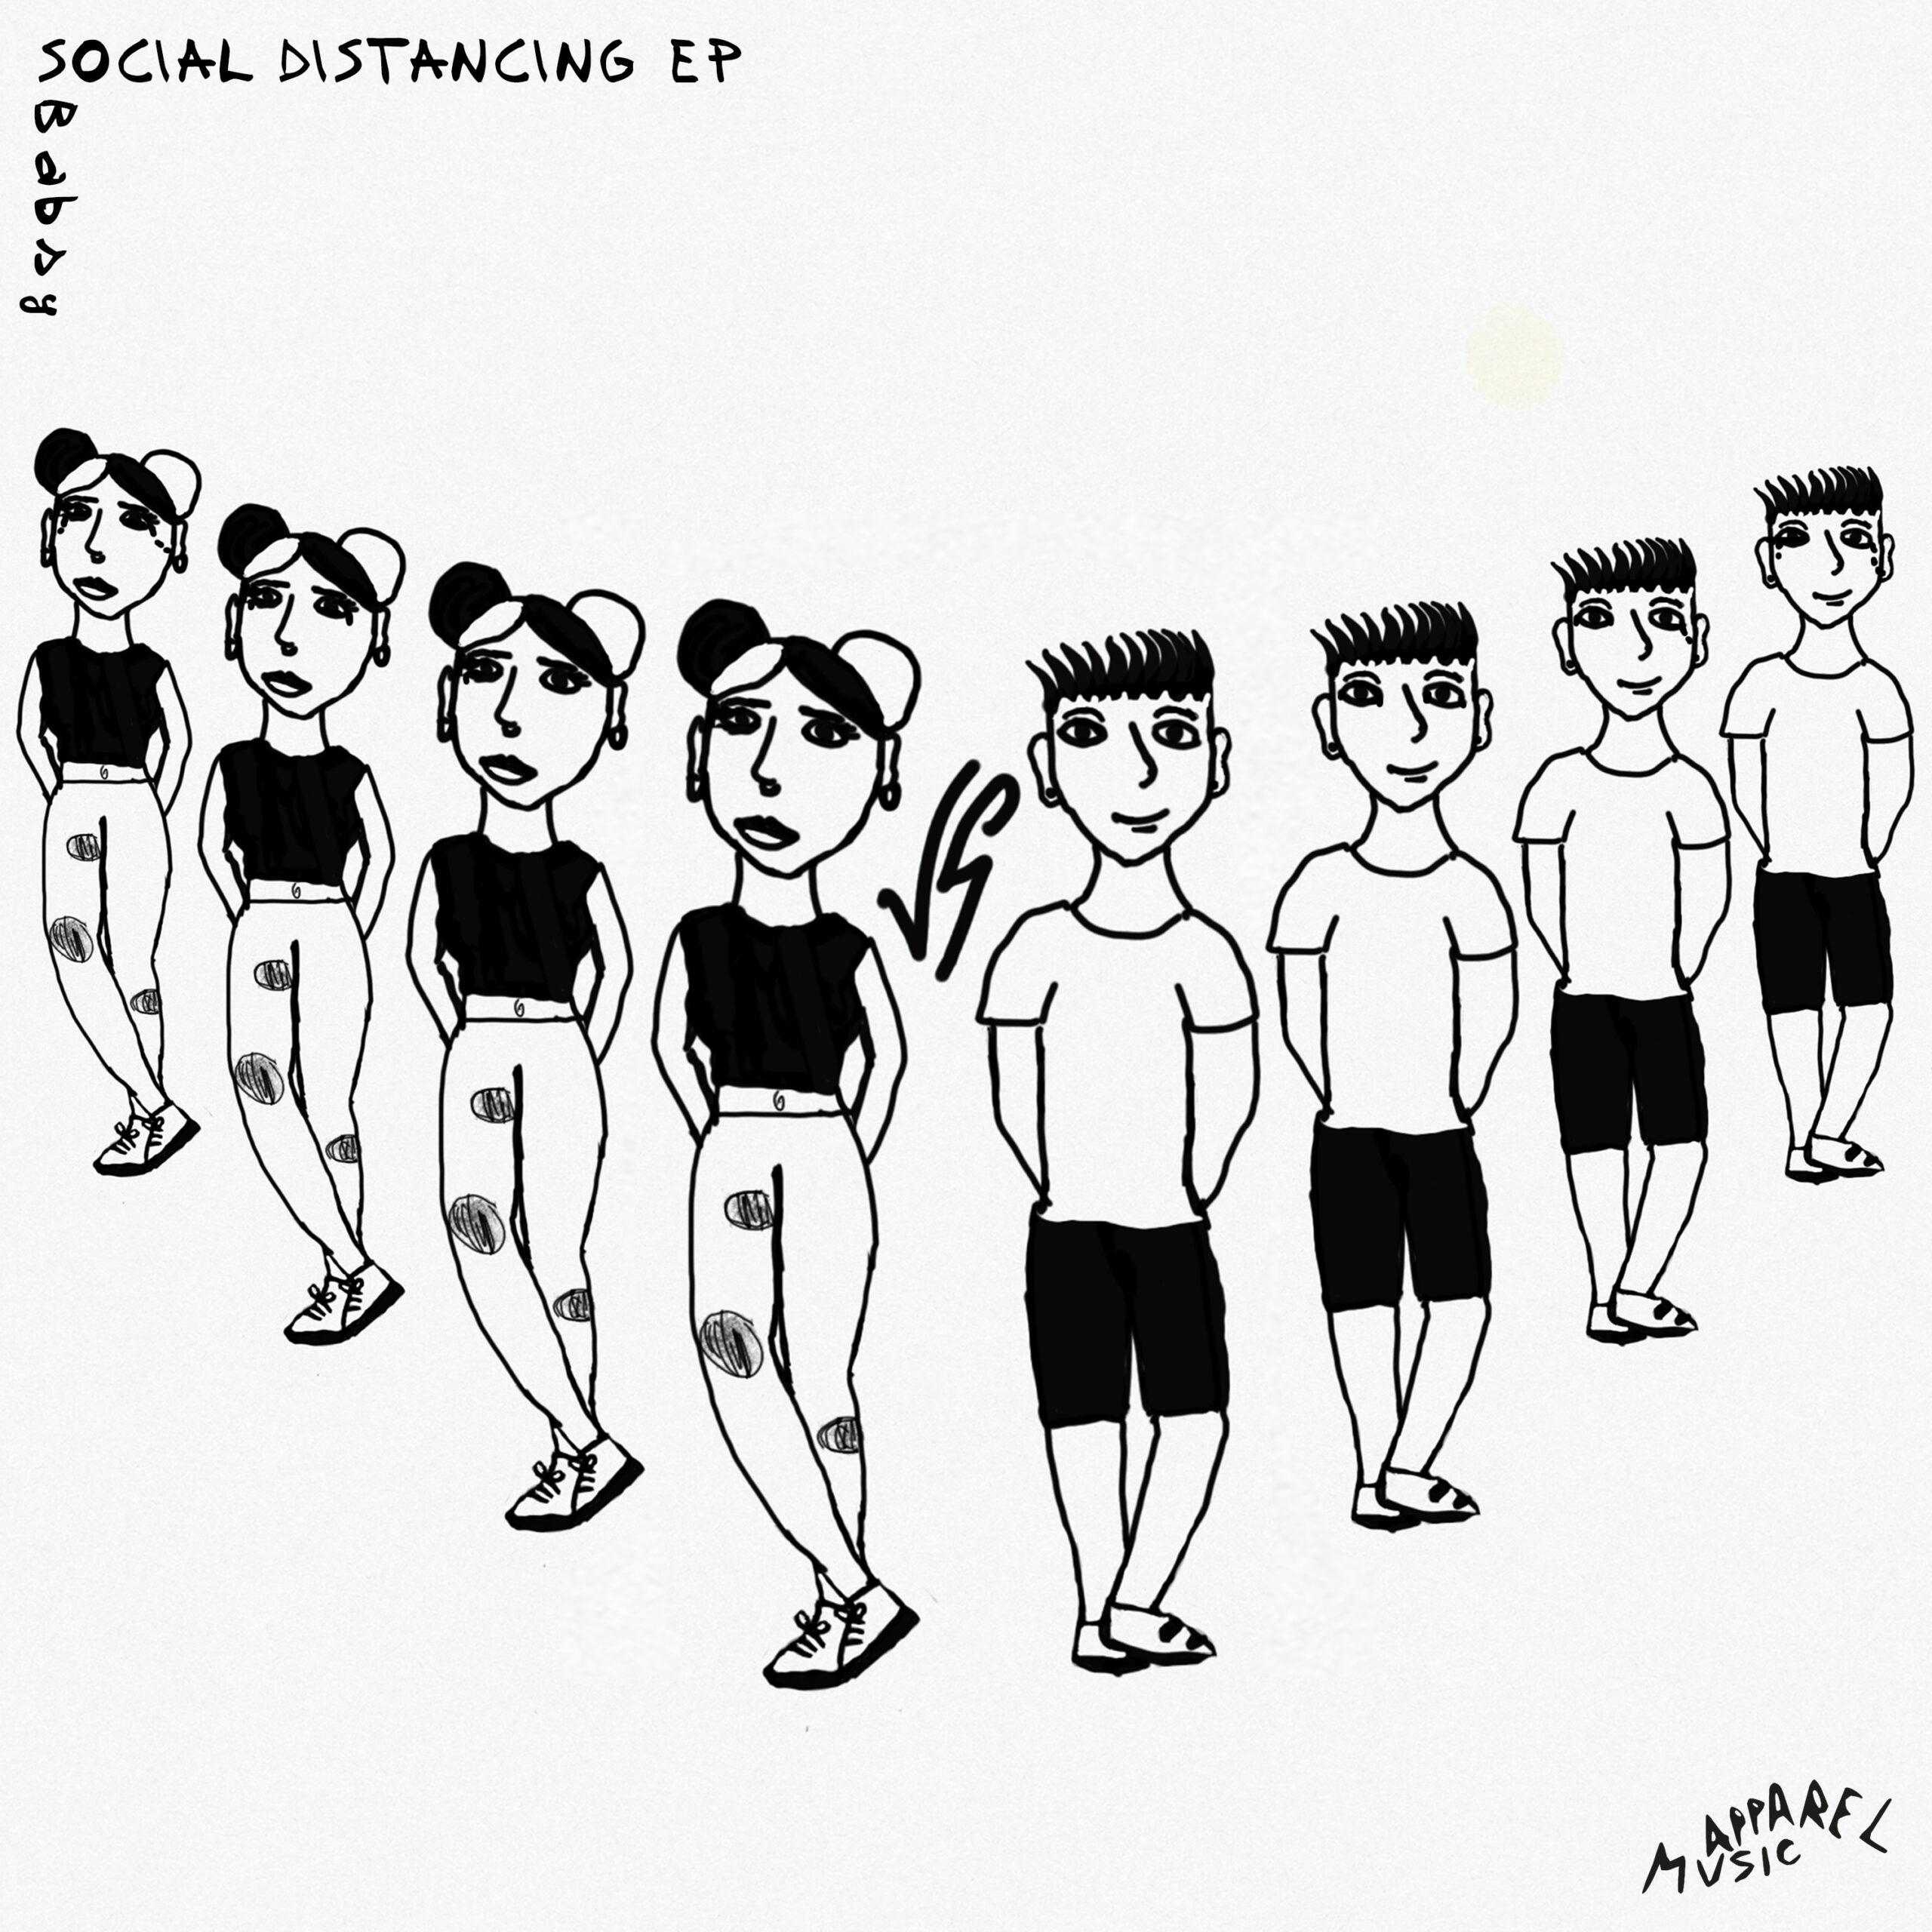 Out now 'Social Distancing' EP by Babsy